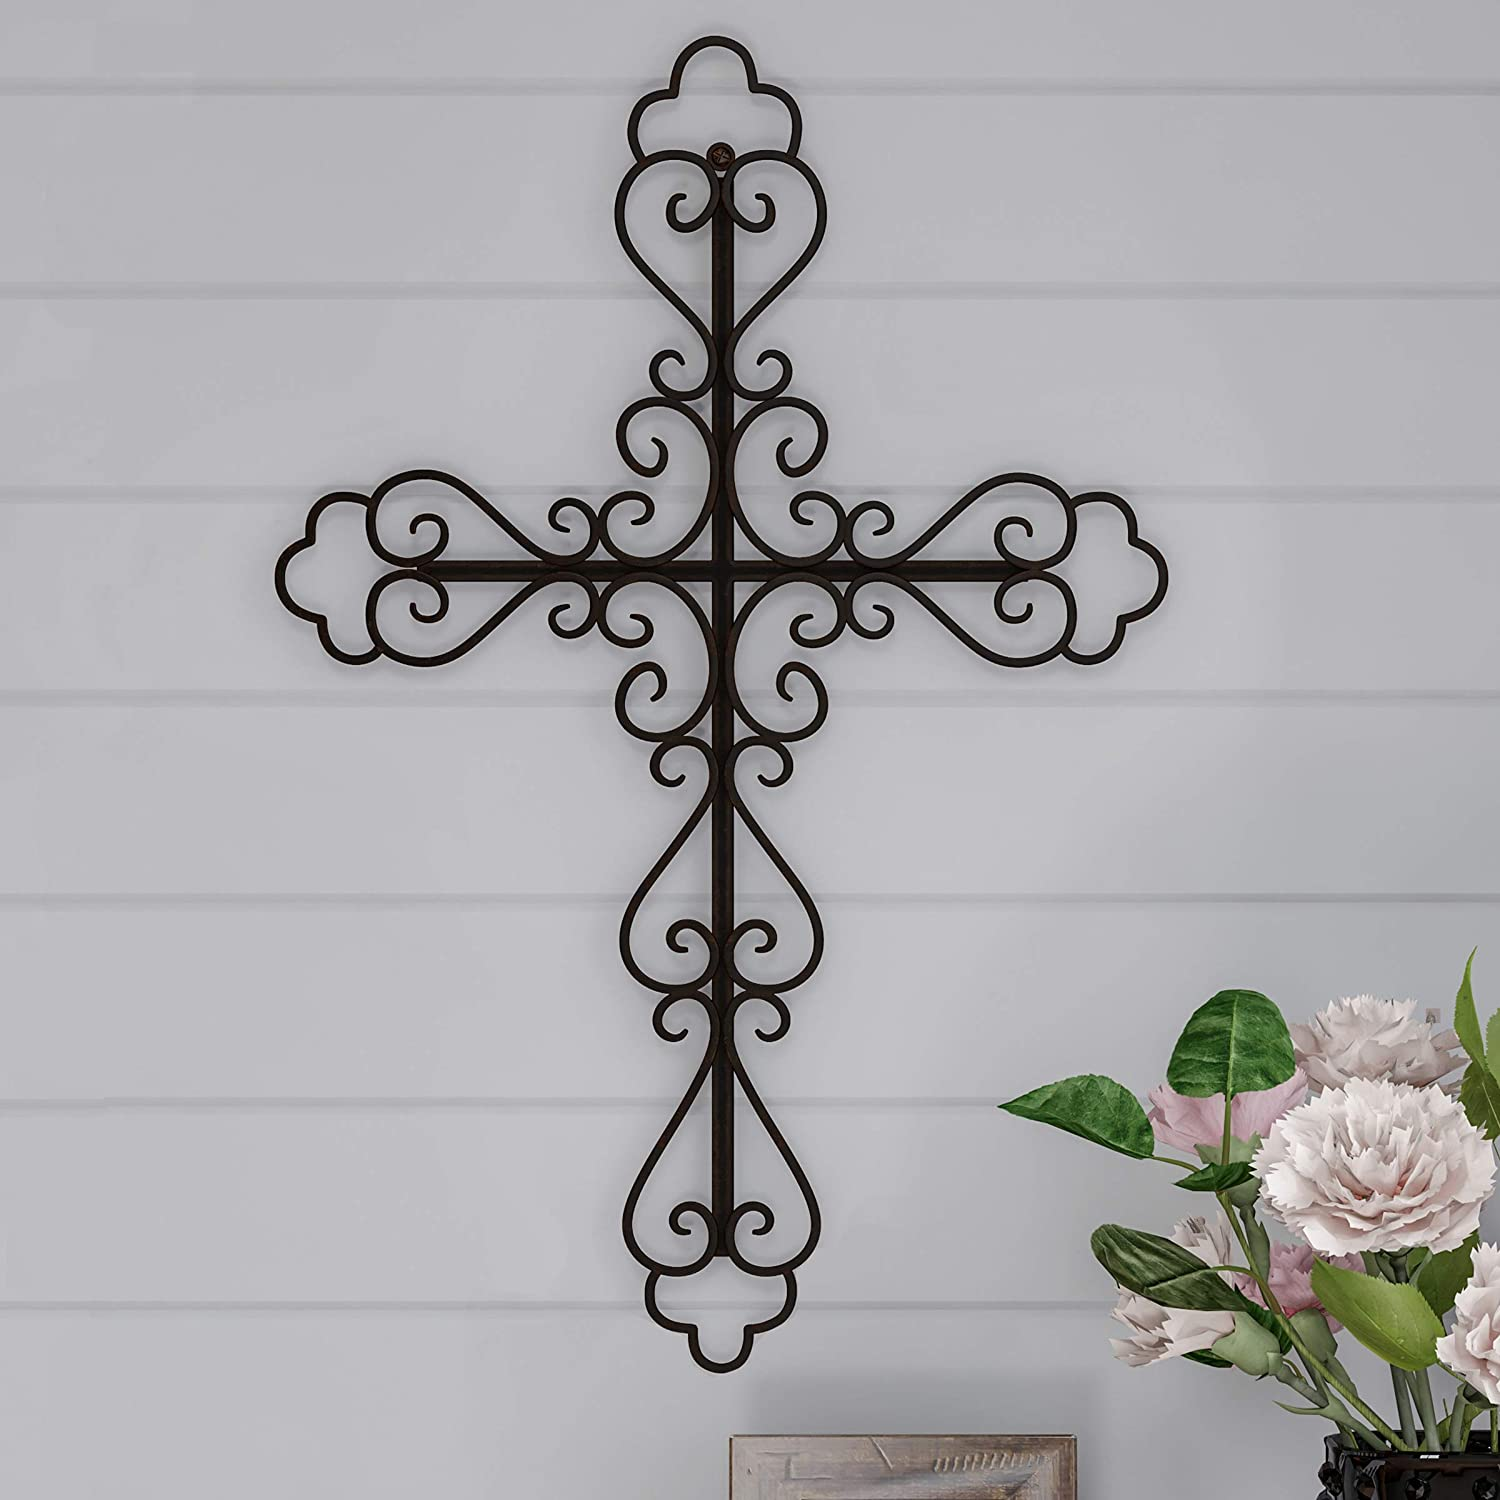 Lavish Home Handmade Short Flat White Mango Wood Vase Metal Cross Fleur De Lis Design-Rustic Handcrafted Religious Wall Art for Decor in Living Room, Bedroom